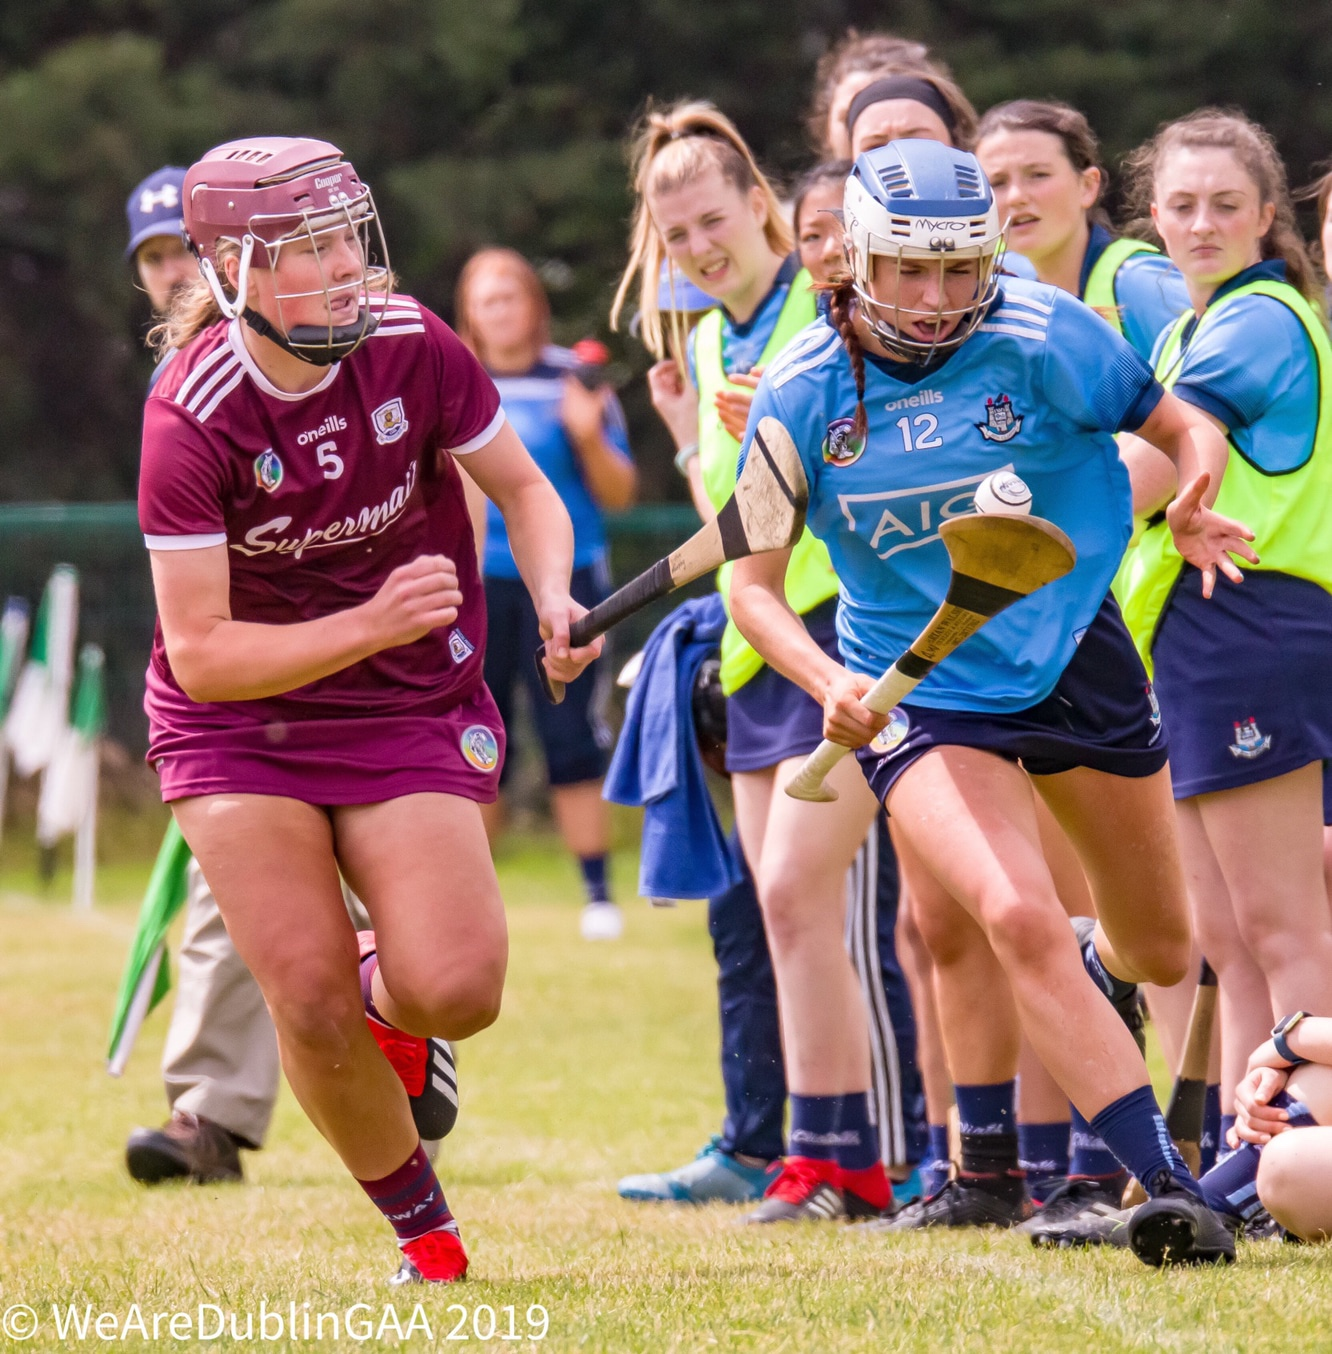 A Dublin and Galway Camogie player in action during last year's intermediate championship, both sides meet this weekend with the game being live-streamed